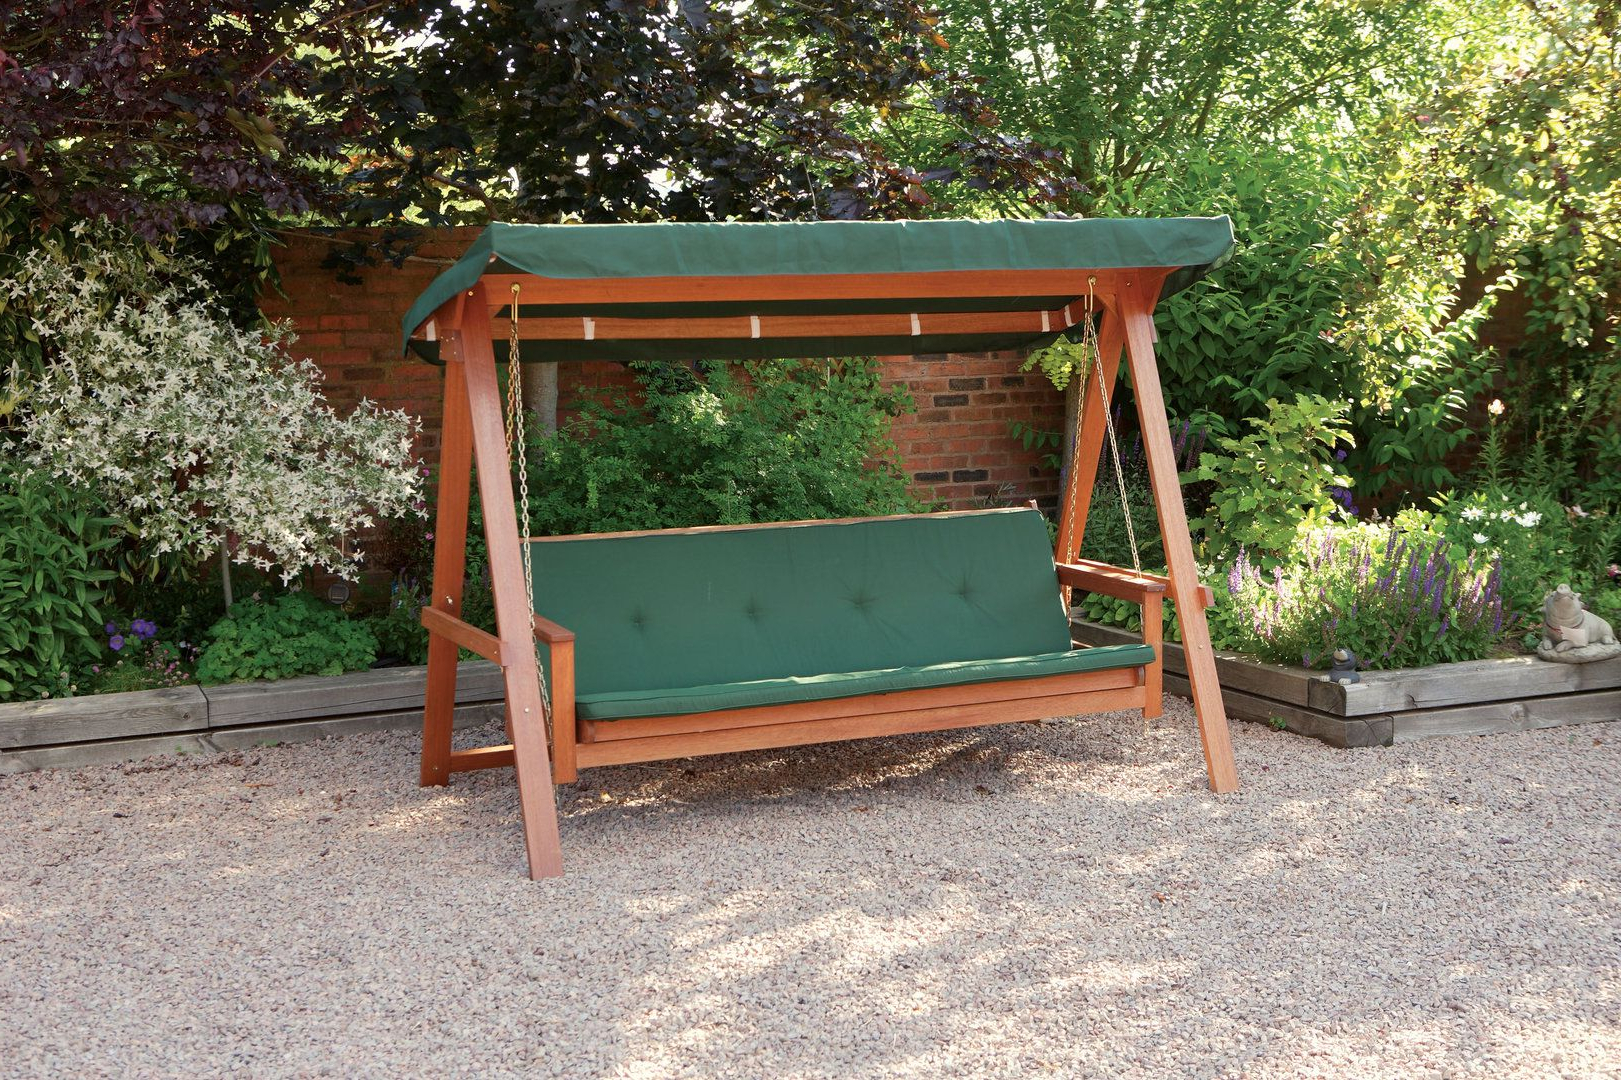 3 Seater Swings With Frame And Canopy Regarding Widely Used Quality Wooden Swing Bed 3 Seater Garden Swing Seat With (View 16 of 30)